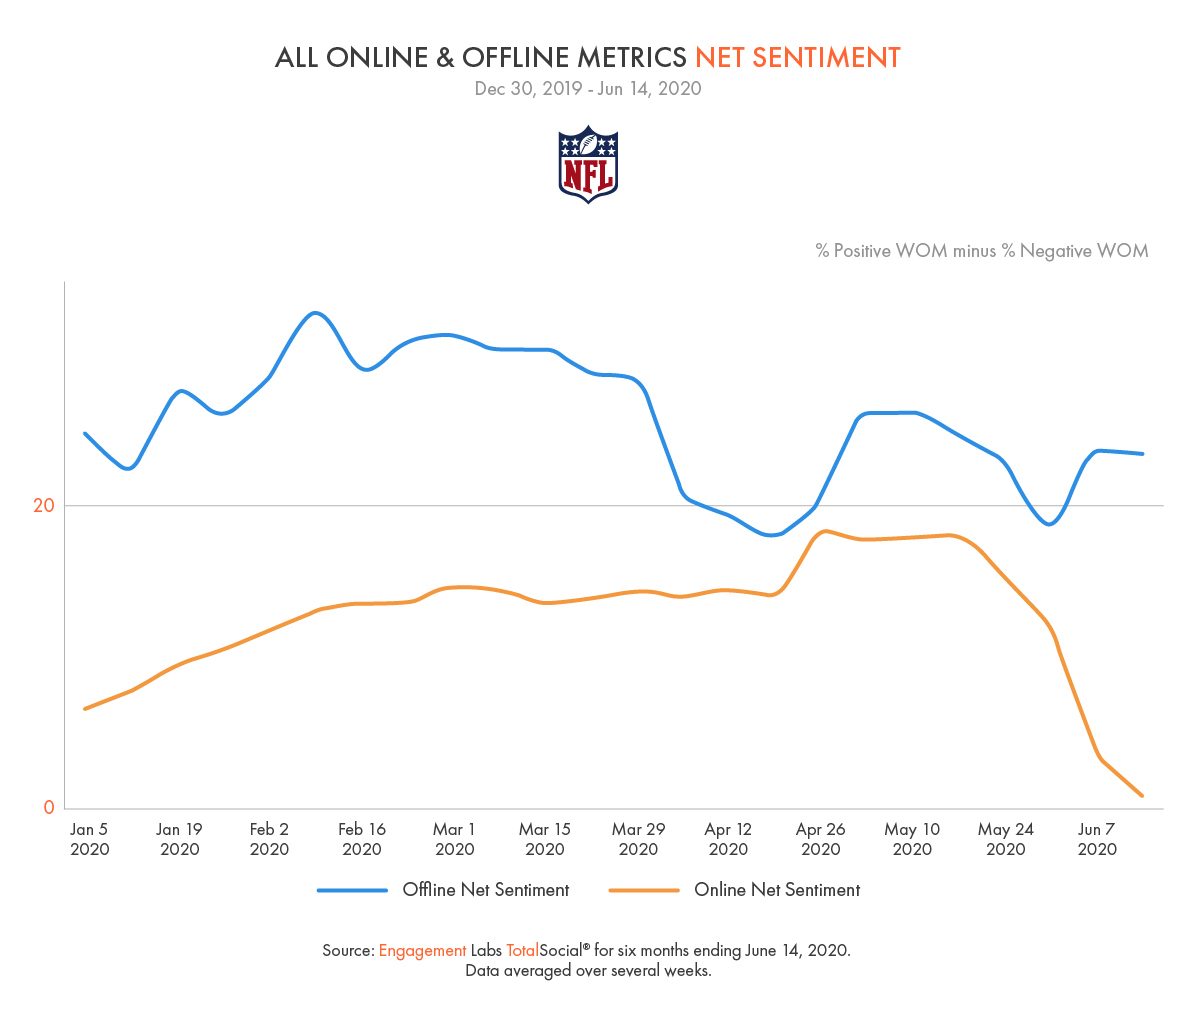 NFL SENTIMENT STAYS POSITIVE OFFLINE